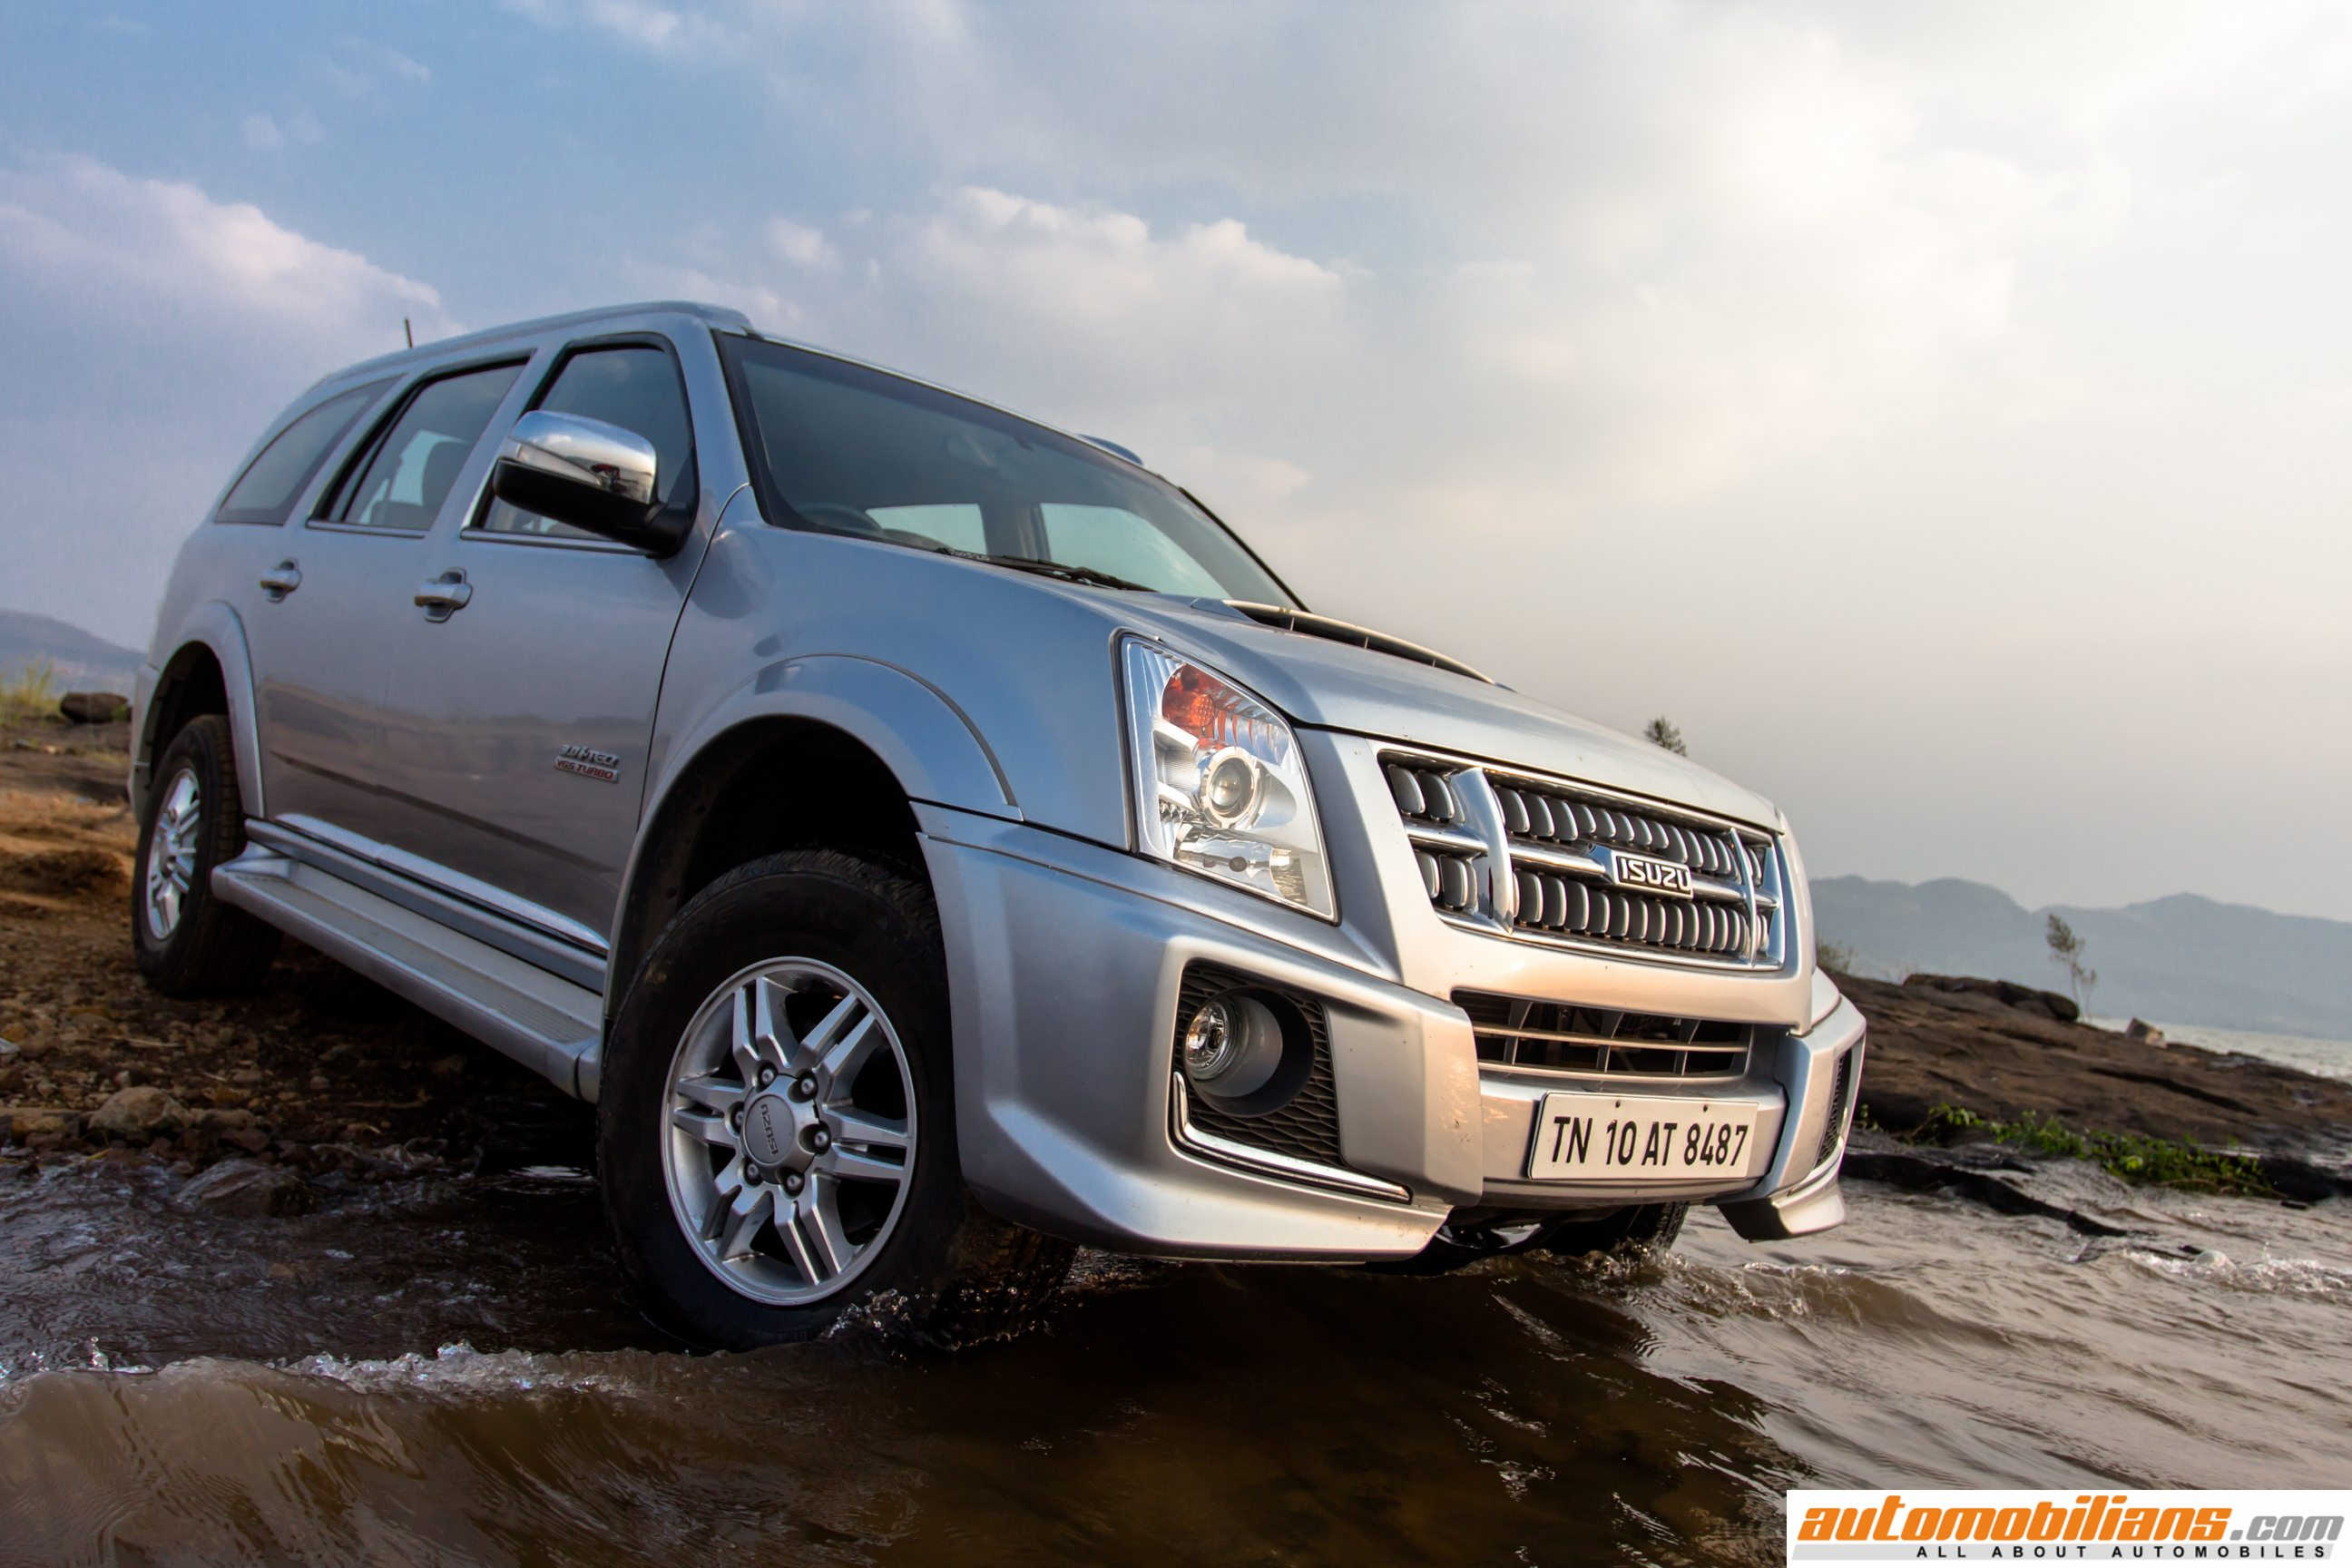 isuzu mu 7 4x2 automatic test drive review isuzu mu7 mu 7